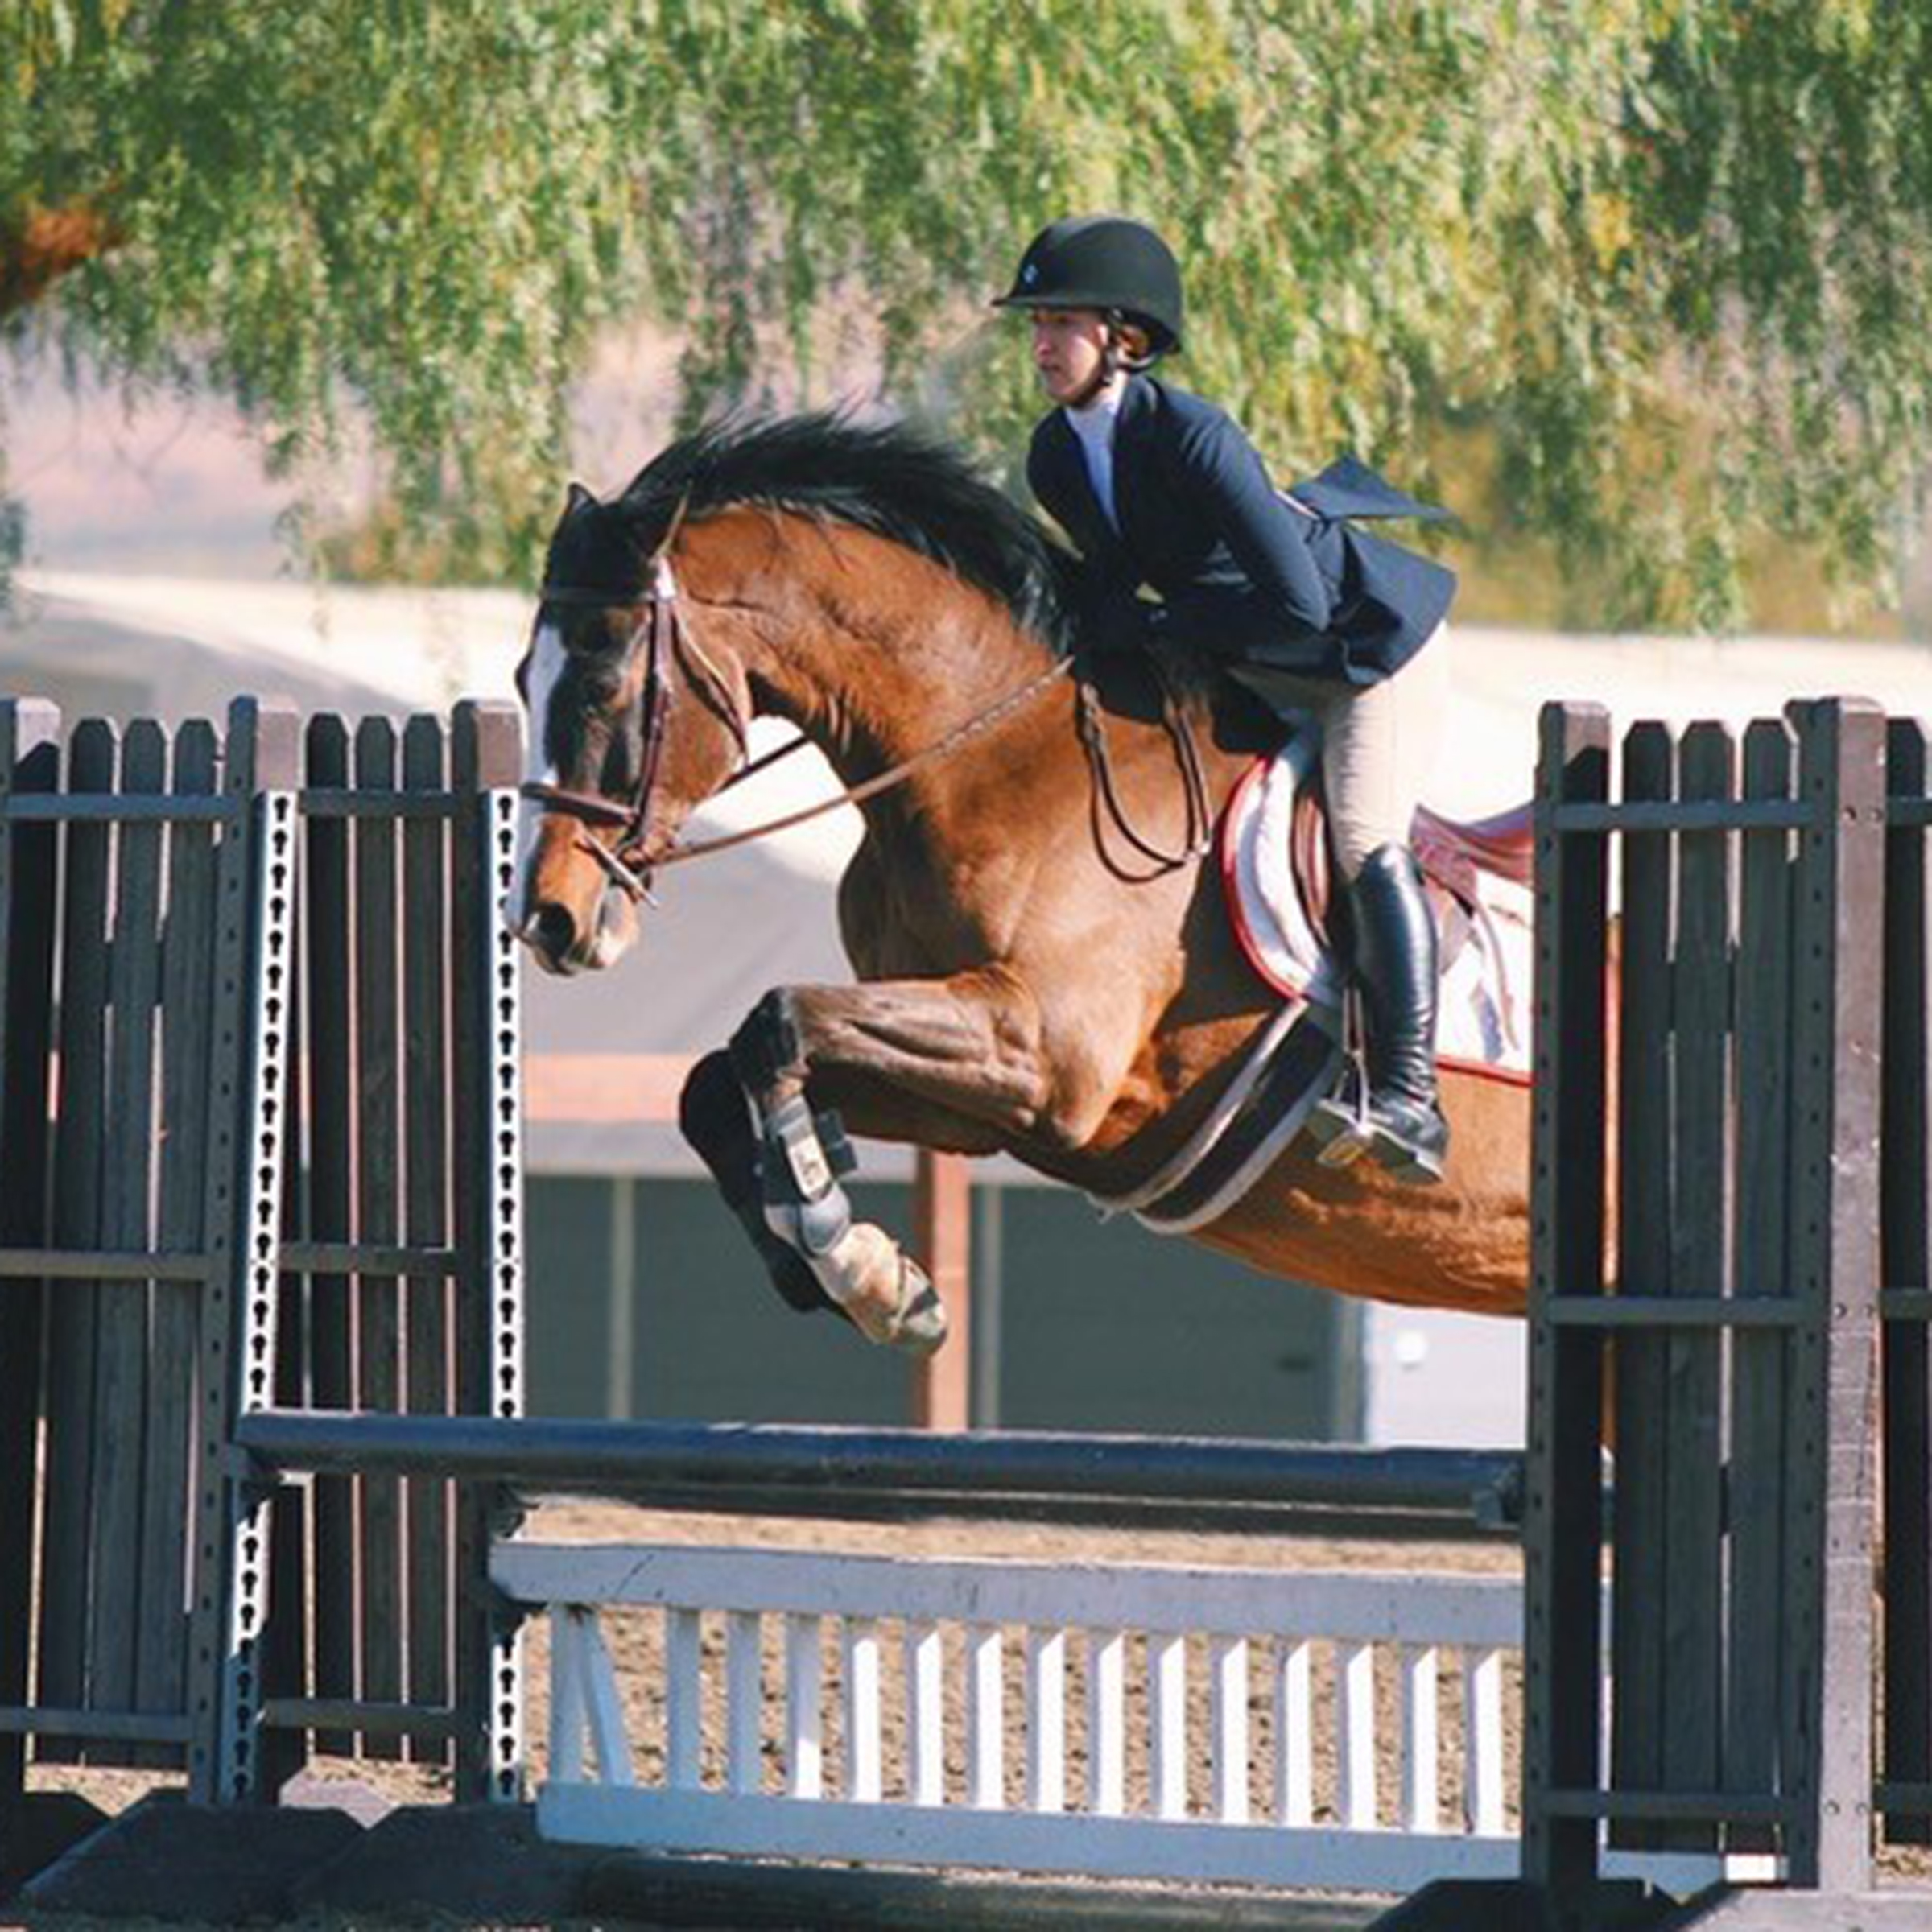 Equestrian Team Update from University of Southern California